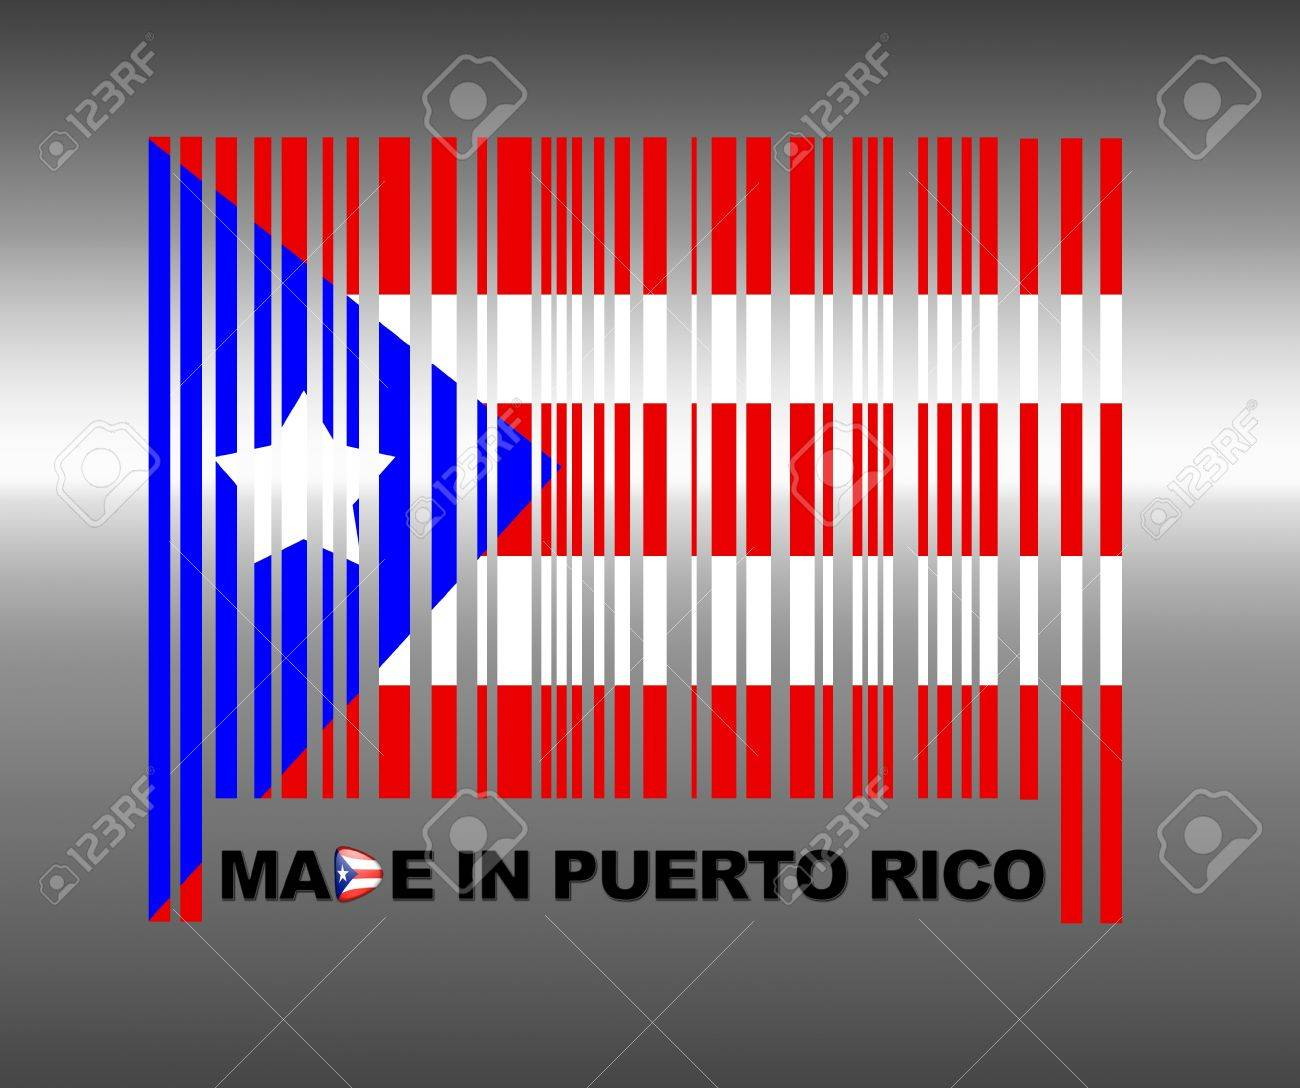 Barcode Puerto Rico. Stock Photo - 13194792